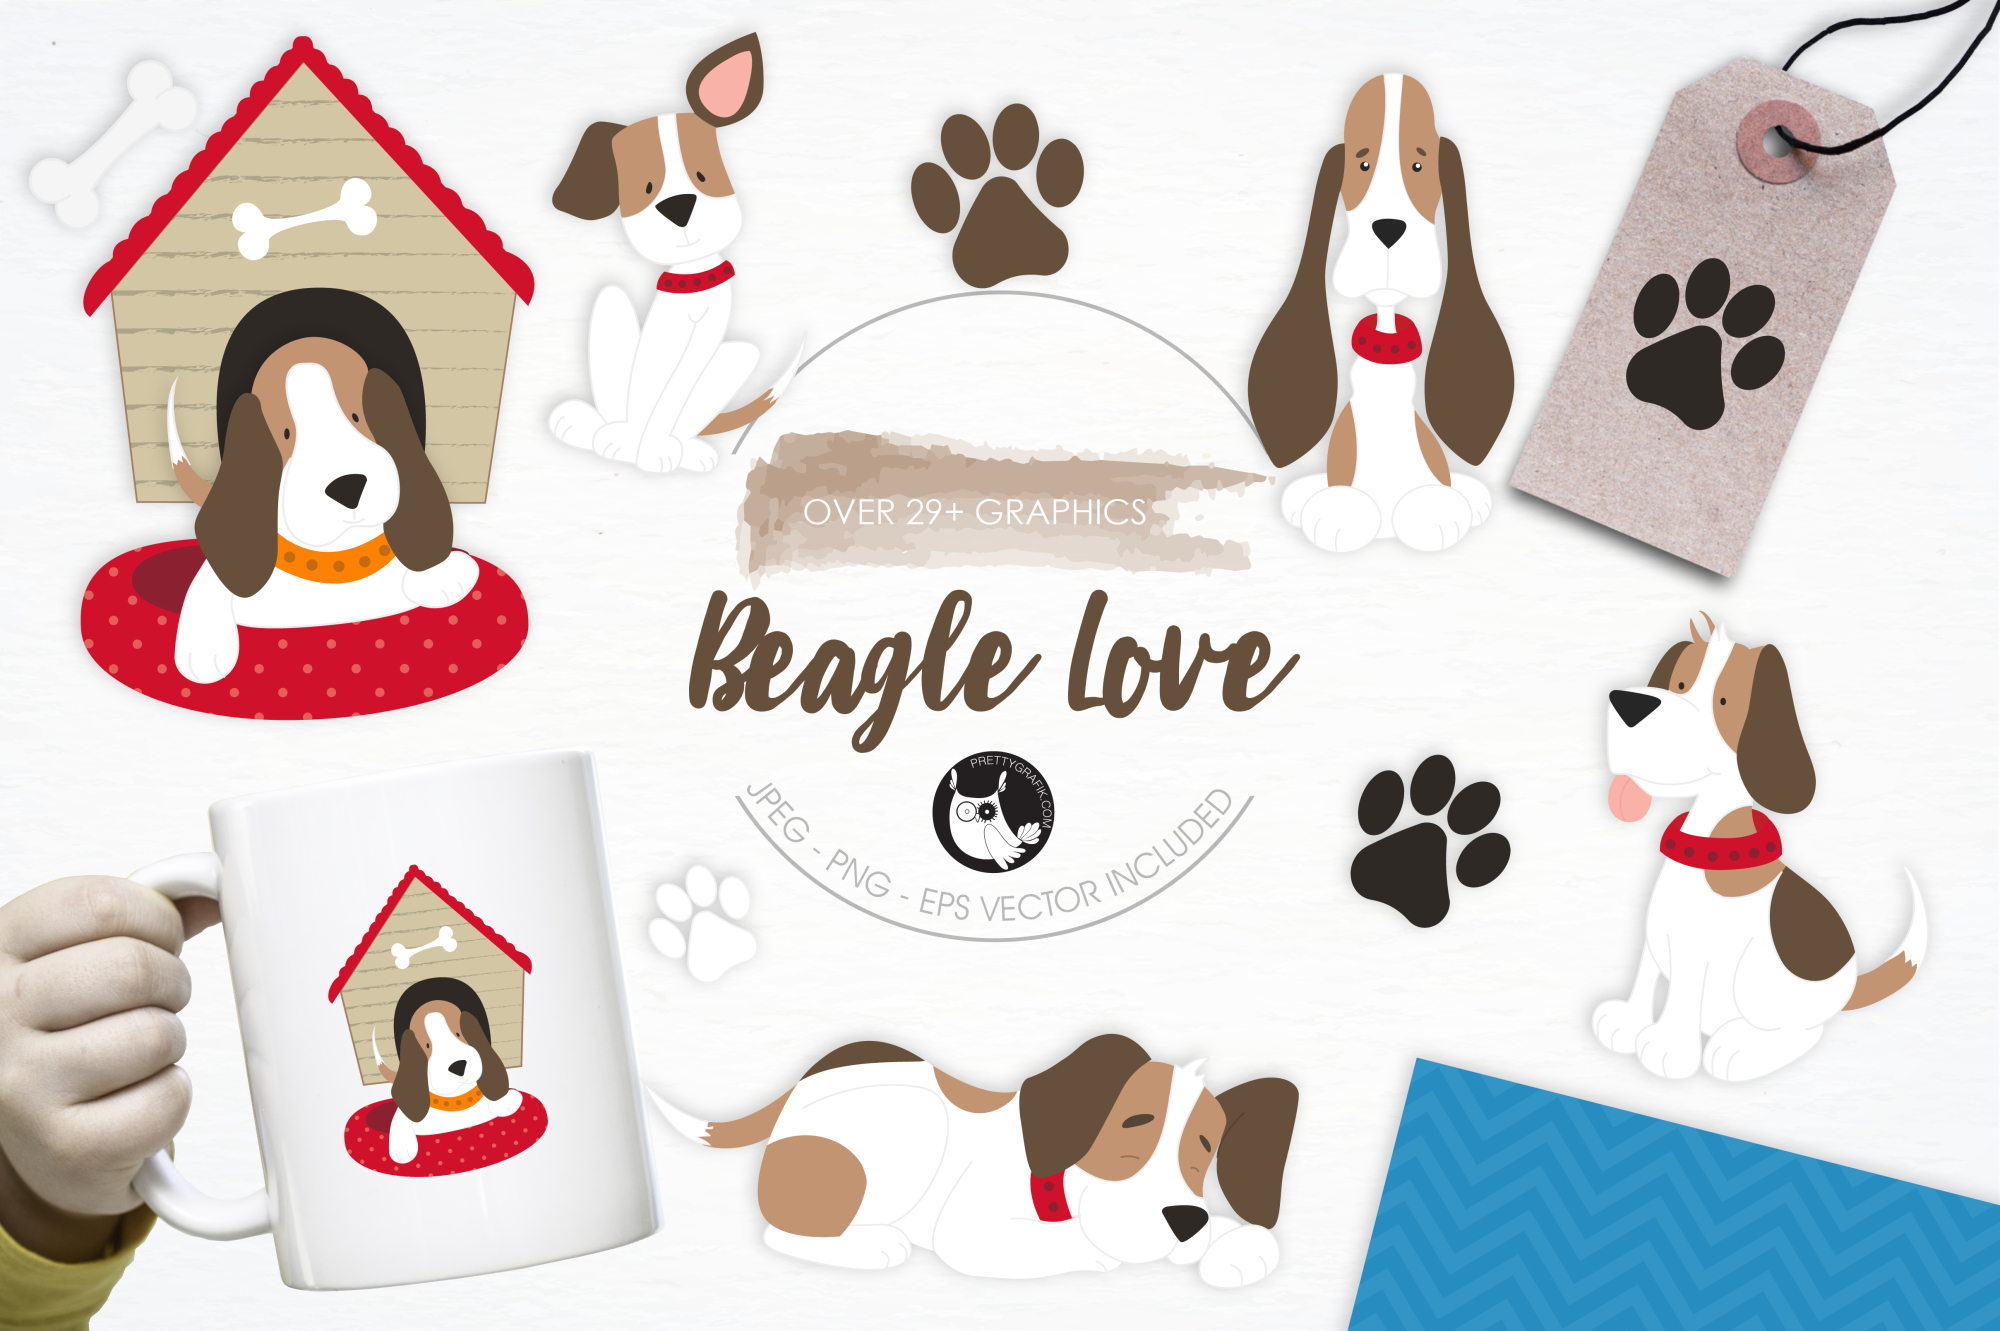 Beagle Love graphics and illustrations example image 1